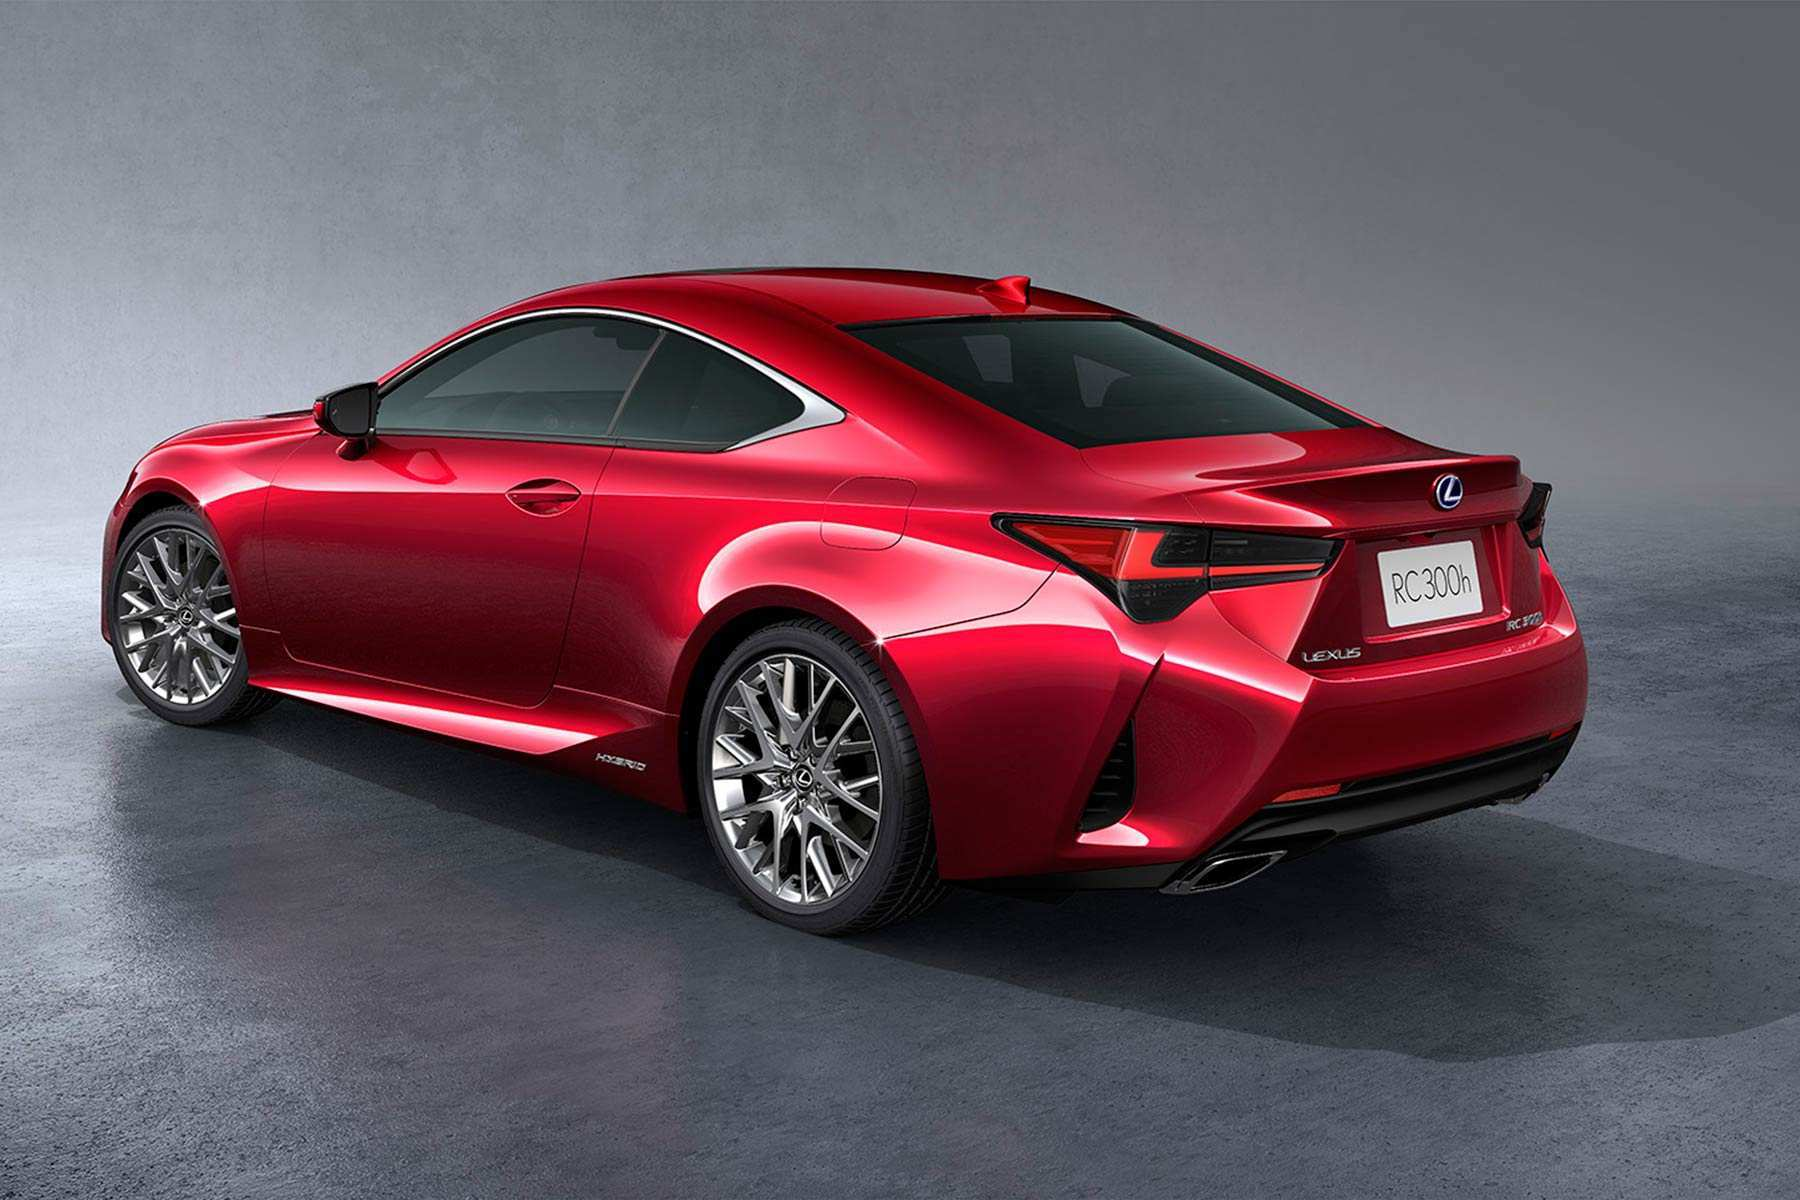 54 All New Lexus 2019 Coupe Spesification with Lexus 2019 Coupe